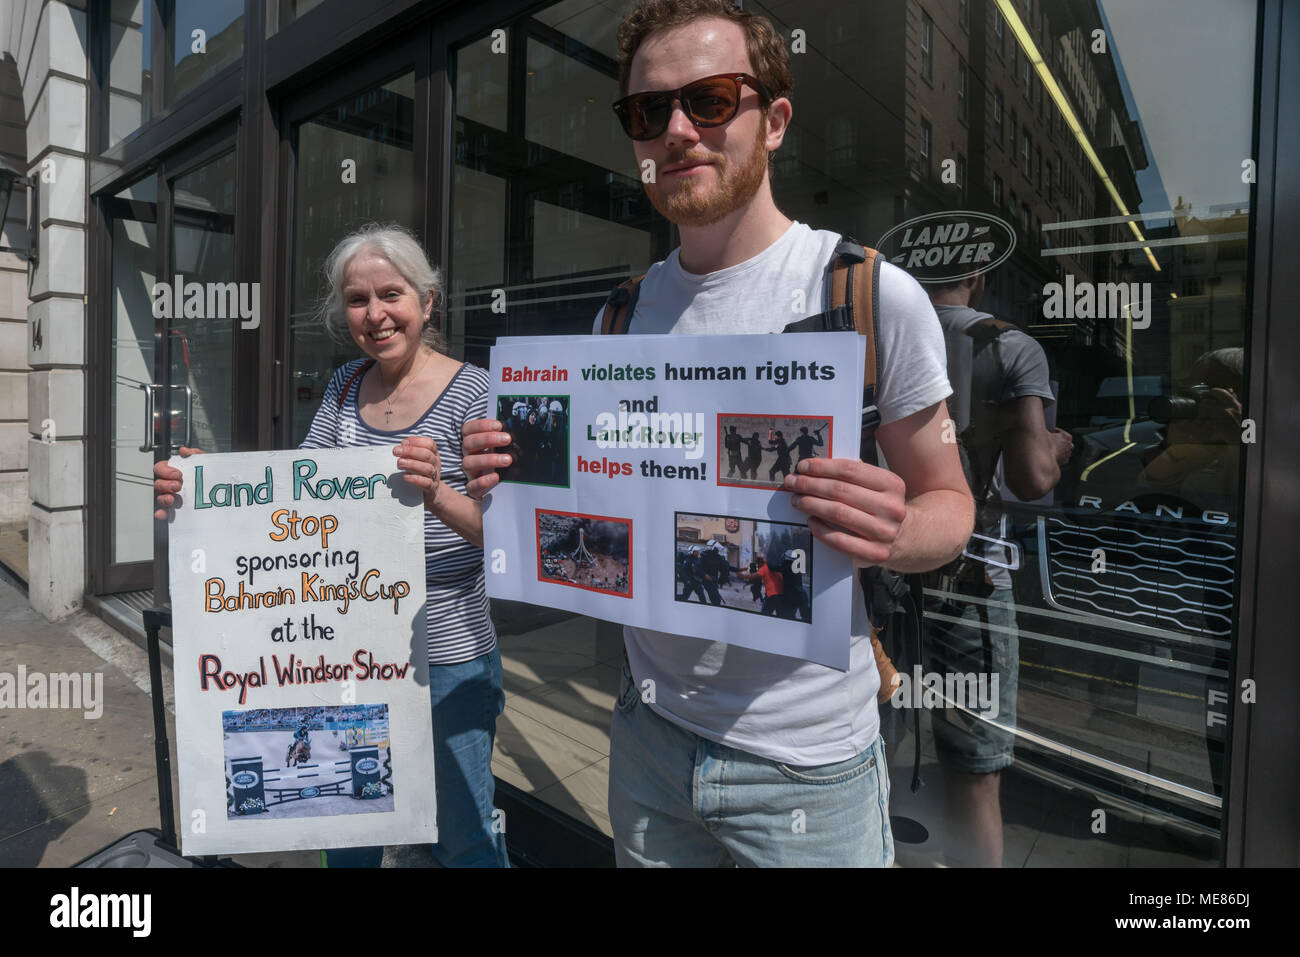 London, UK. 21st April 2018, Campaigners from CAAT (Campaign Against Arms Trade) protest outside the Land Rover showroom in Mayfair against their continuing sale of military vehicles to the Bahraini regime, and their sponsorship for the Royal Windsor Horse Show where Bahrain's King Hamad bin Isa al-Khalifa will join the Queen on May 12th. Despite Bahrain's horrific and deteriorating human rights record, Britain still sells large volumes of arms to the regime, over £82m licenced exports since the 2011 pro-democracy rising. Credit: Peter Marshall/Alamy Live News - Stock Image